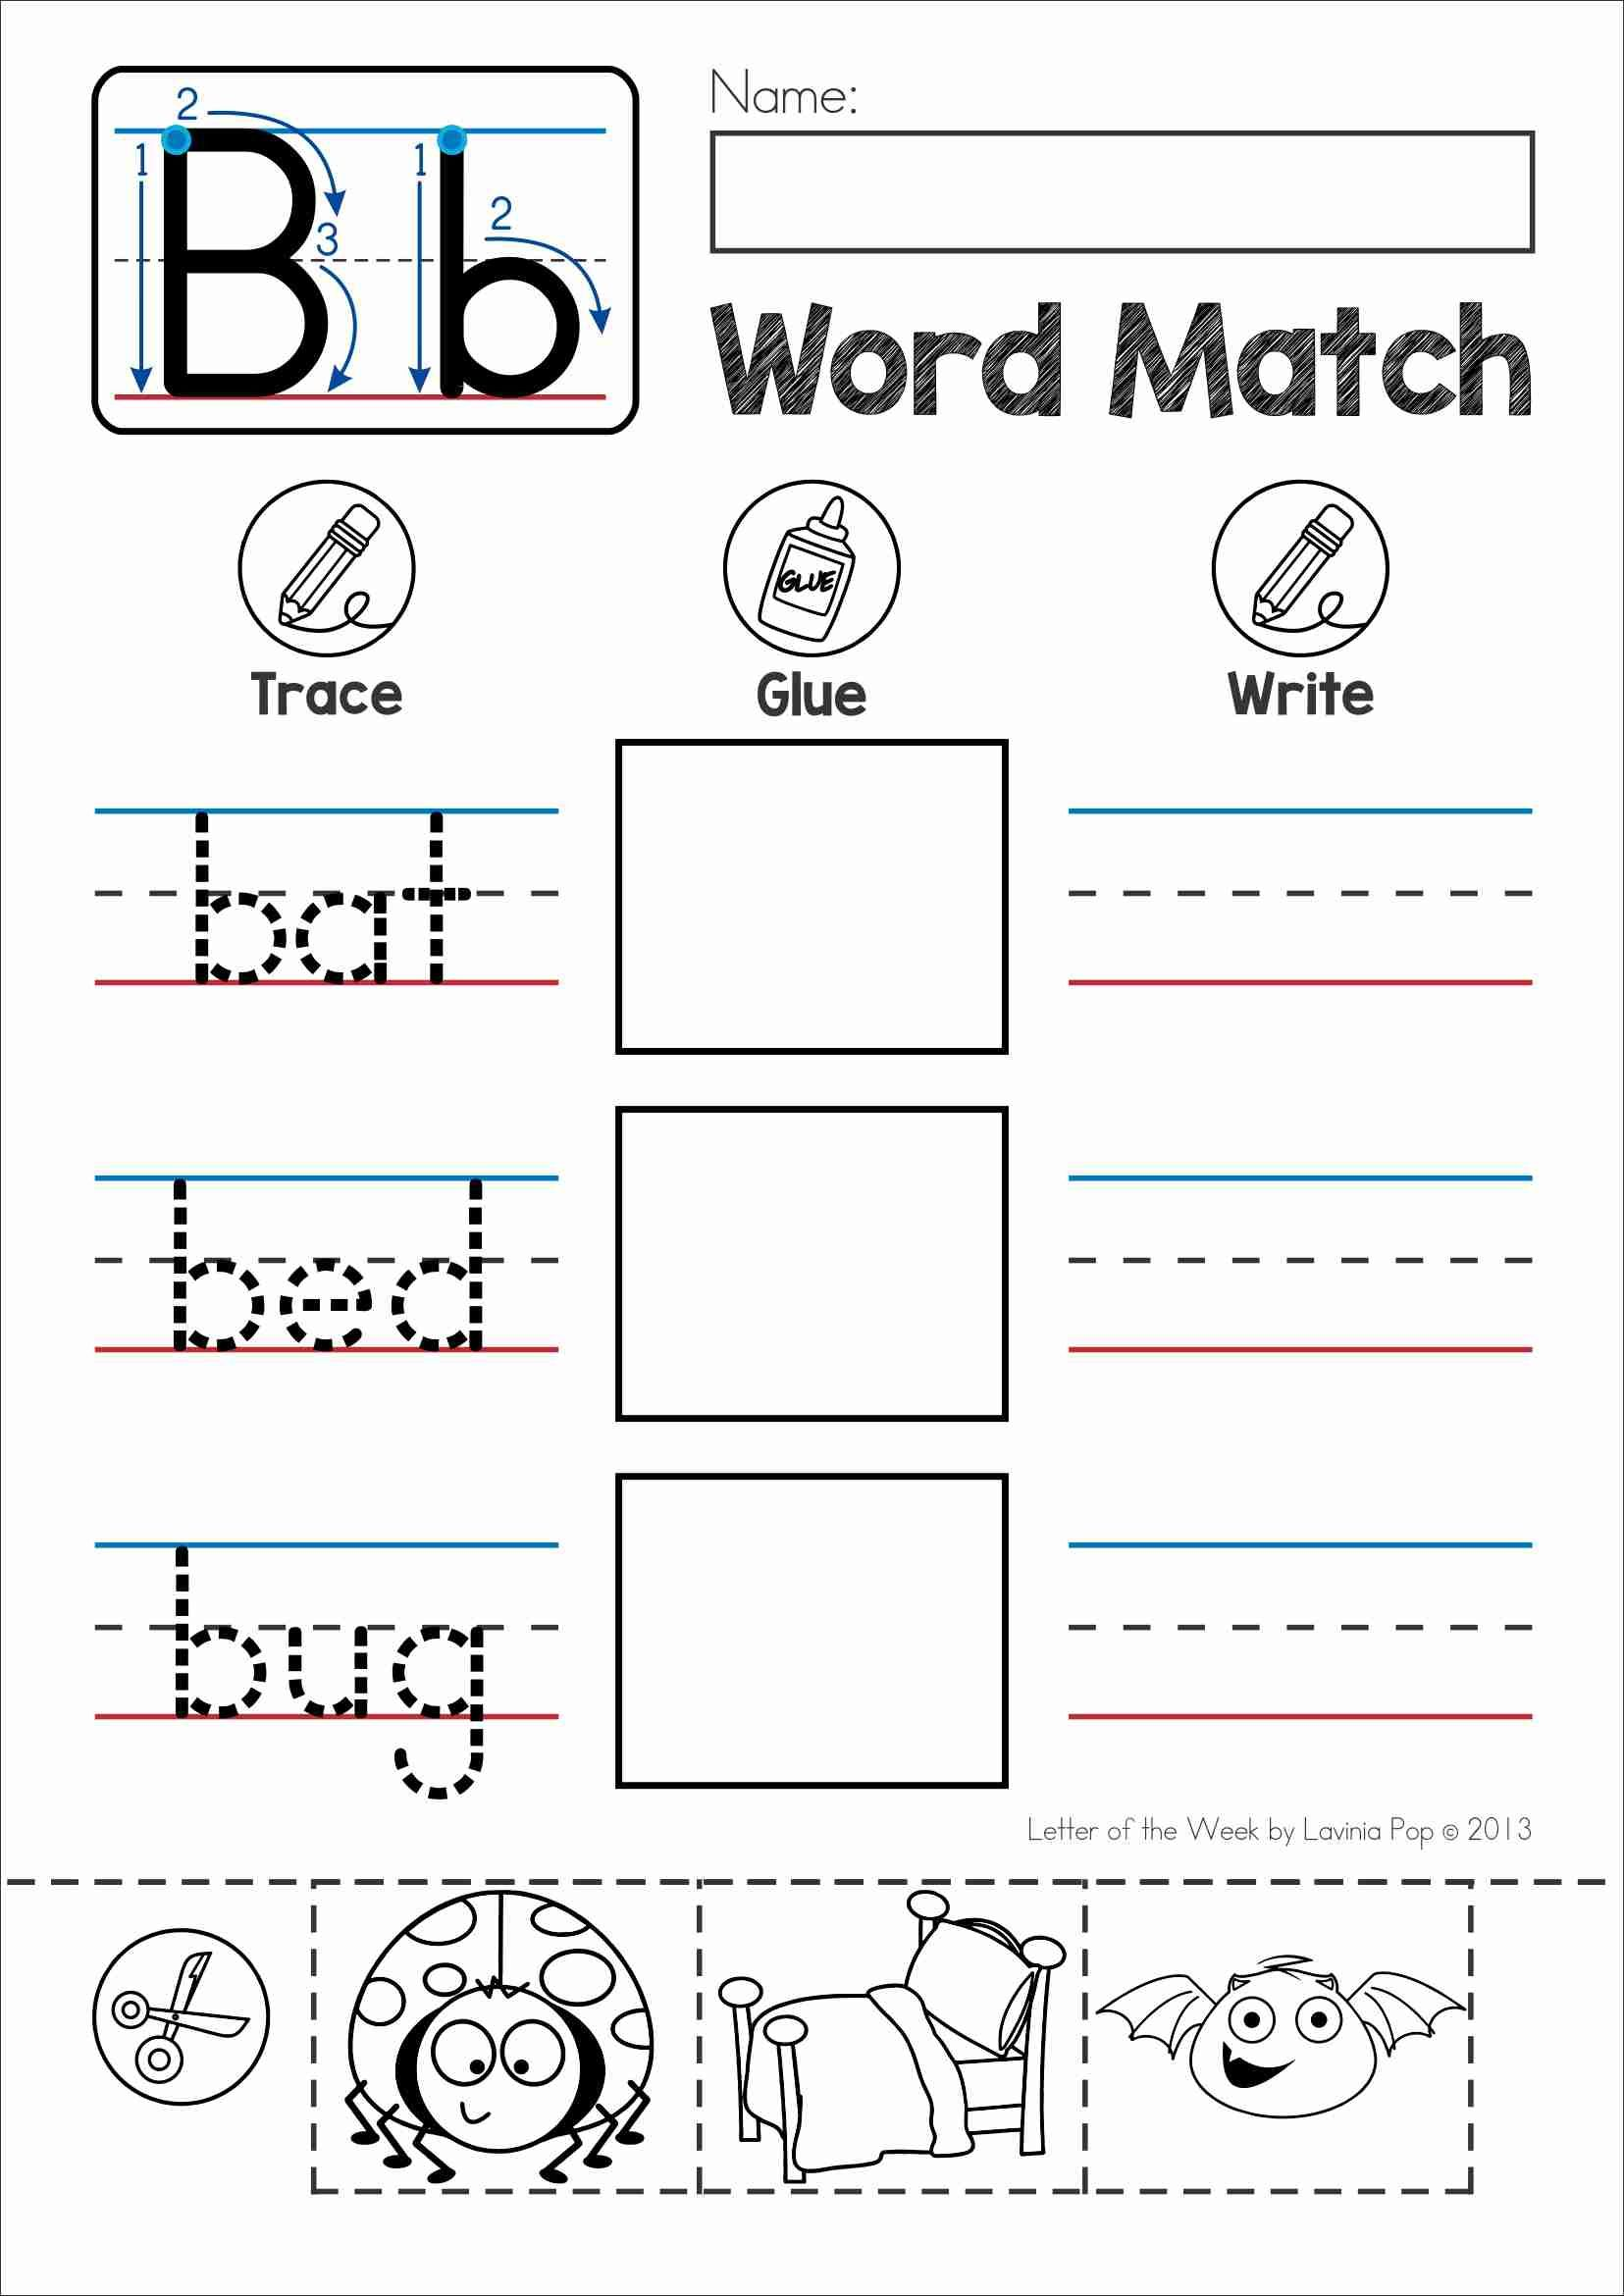 Free Phonics Letter Of The Week B Word Match Cut And